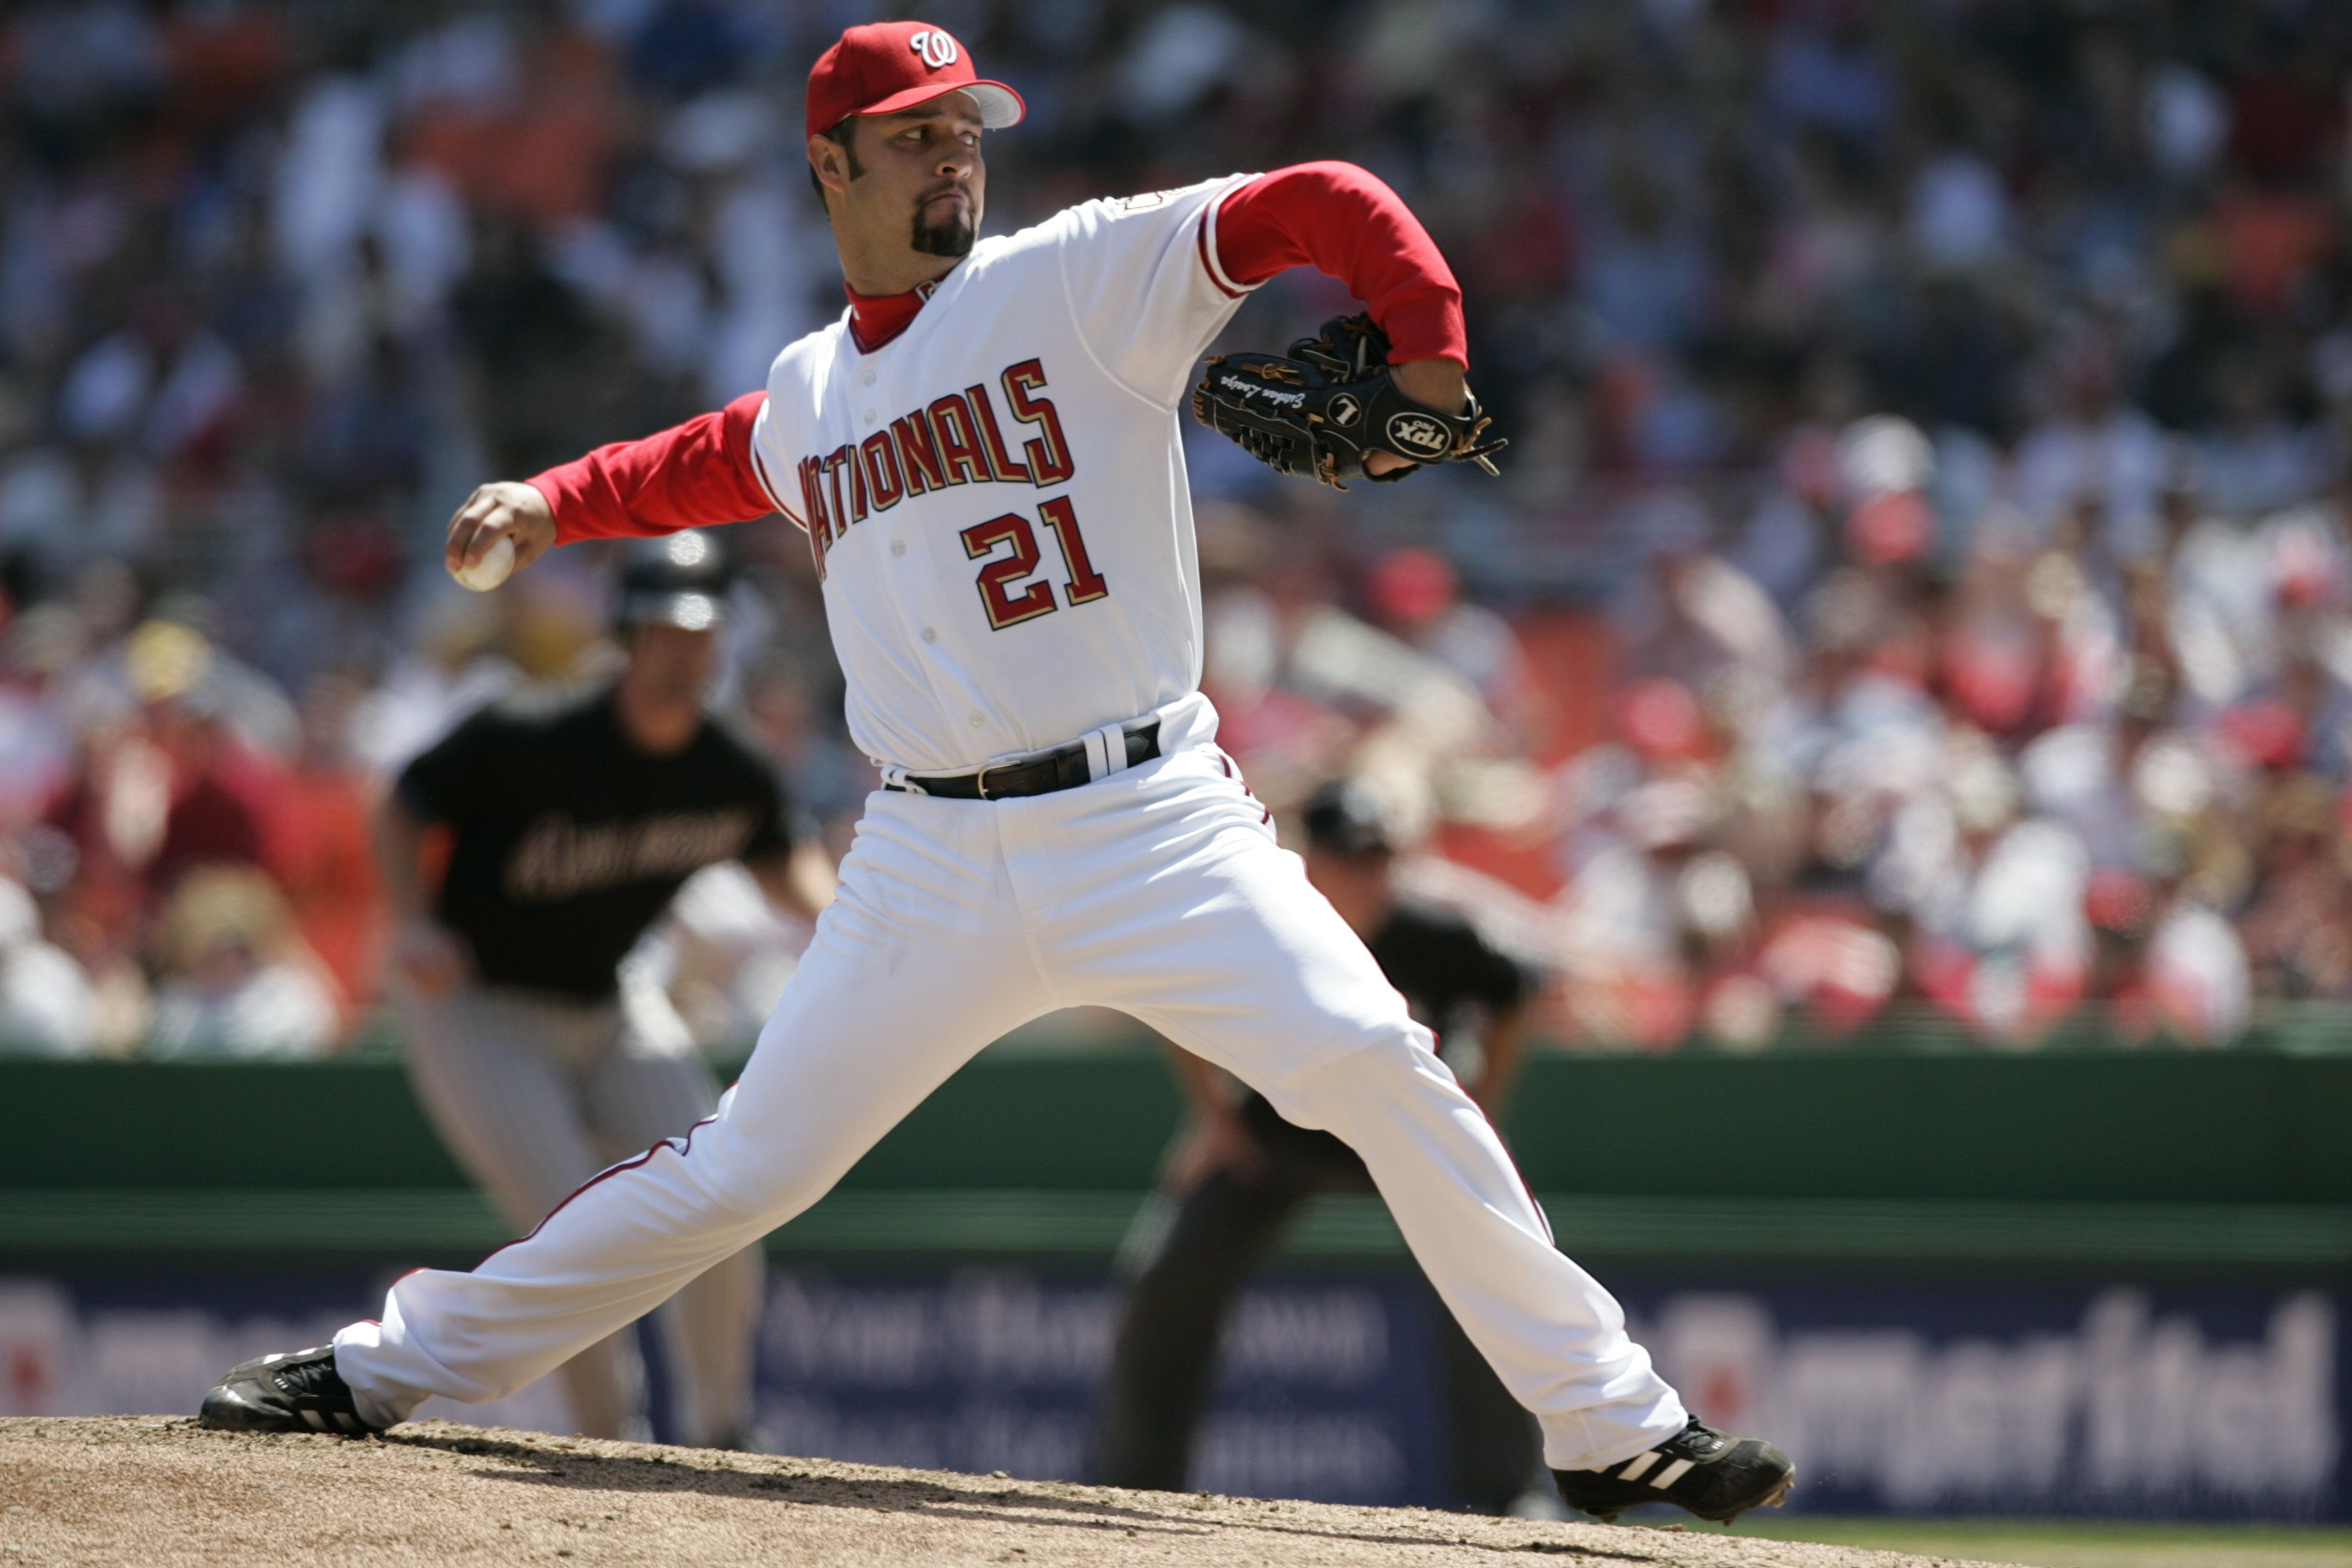 WASHINGTON - APRIL 17:  Estaban Loaiza of the Washington Nationals pitches during the game against the Arizona Diamondbacks at RFK Stadium on April 17, 2005 in Washington, D.C. The Nationals defeated the Diamondbacks 7-3. (Photo by Rich Pilling/MLB Photos via Getty Images)